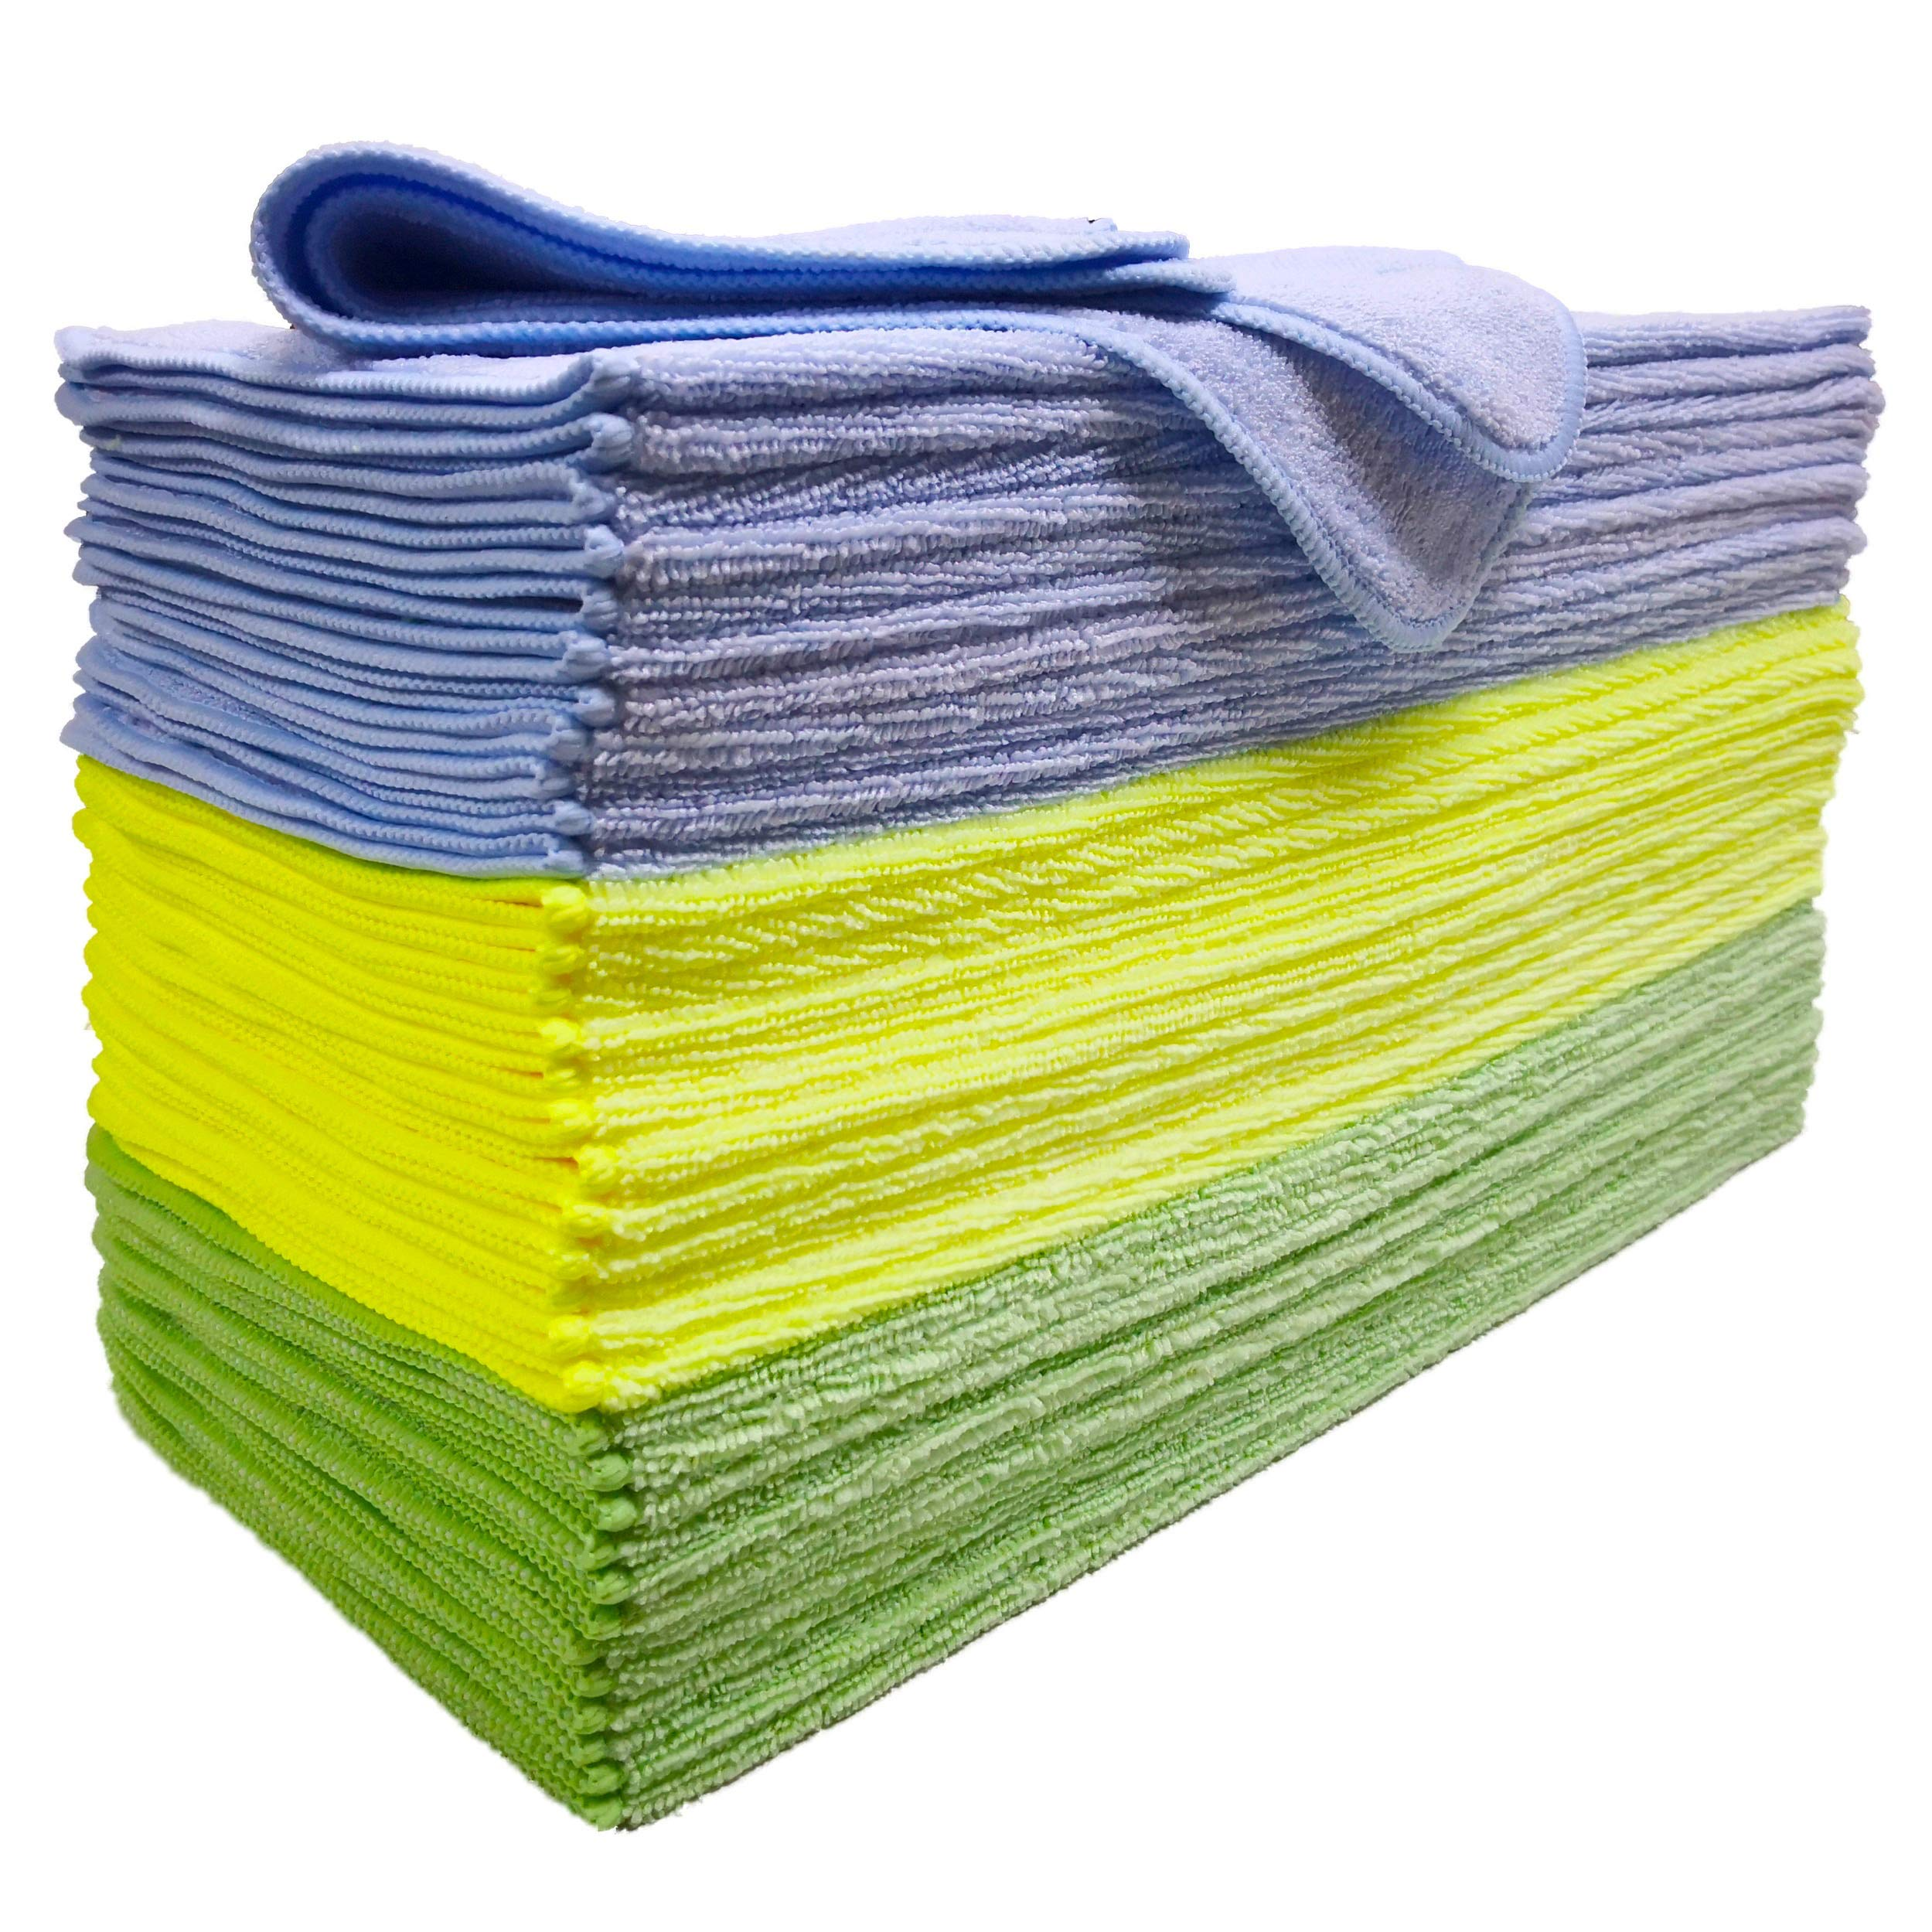 Polyte Microfiber Cleaning Towel (16x16, 36 Pack, Premium, Light Blue,Green,Yellow)